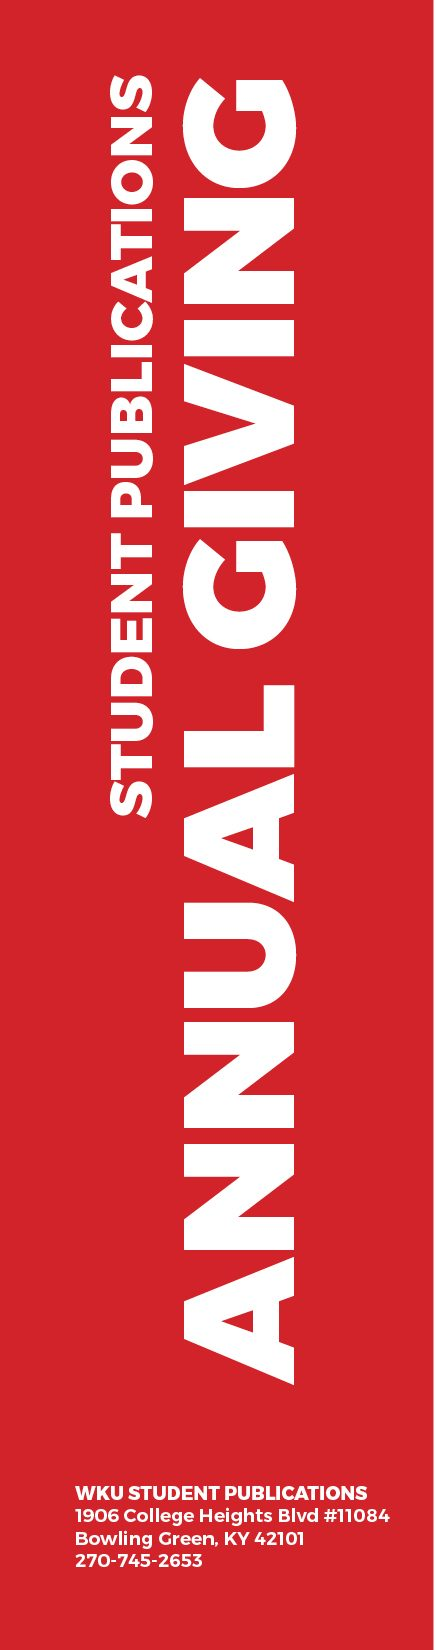 Student Publications Annual Giving